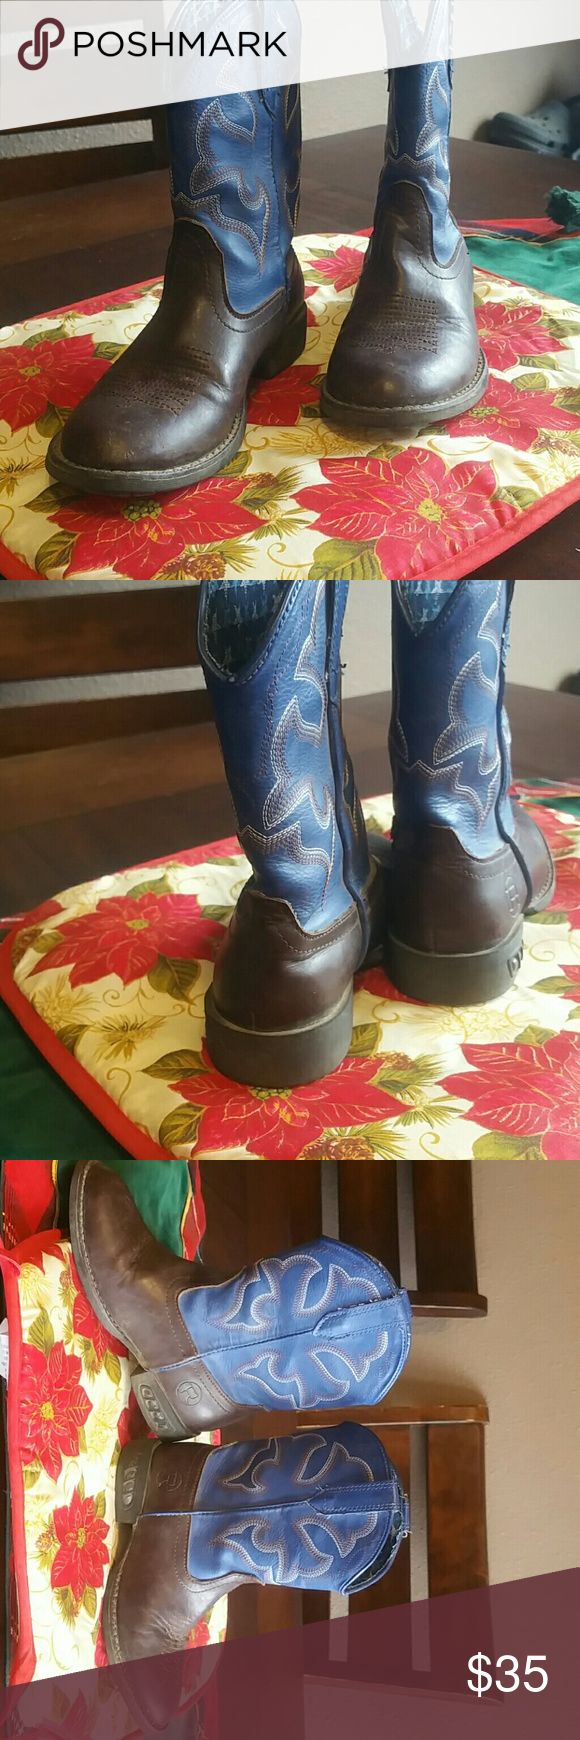 Little Boys Cowboy Boots! Light-Up!! Super cute light up Roper boots size USA 11! My kids get a new pair evert Christmas but these didn't fit my kiddo so he MAYBE wore them 10x MAYBE! Lights flash blue when then walk! Really good condition, a slight scuff or 2 but nice enough condition to wear to rodeo, school, church, or anywhere else your little one wants to wear them :) Heal is NOT thick enough for spurs but slide in & out of stirrups just fine! Roper Shoes Boots